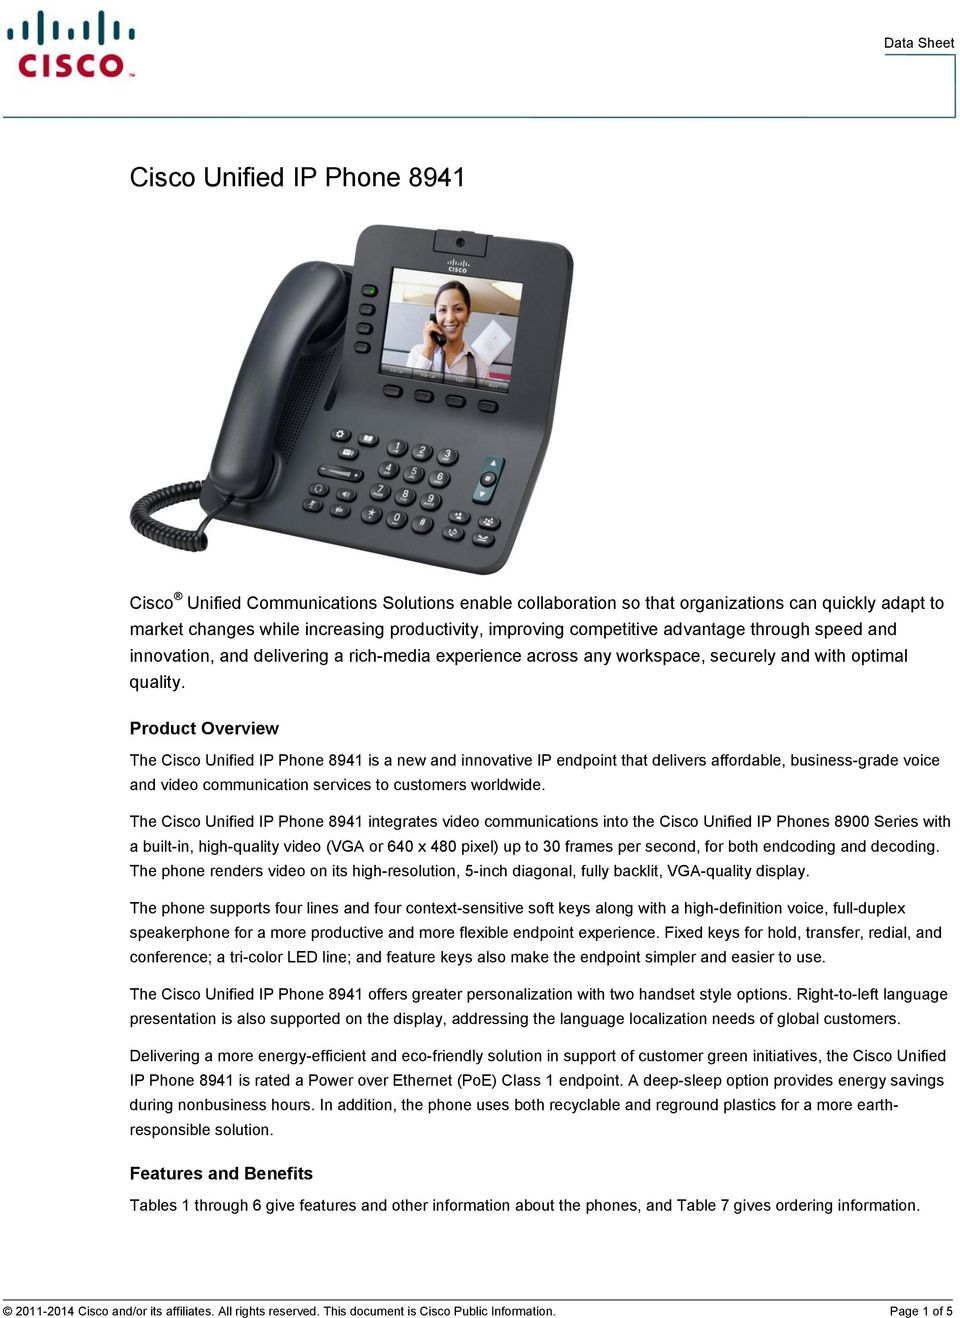 Product Overview The Cisco Unified IP Phone 8941 is a new and innovative IP endpoint that delivers affordable, business-grade voice and video communication services to customers worldwide.